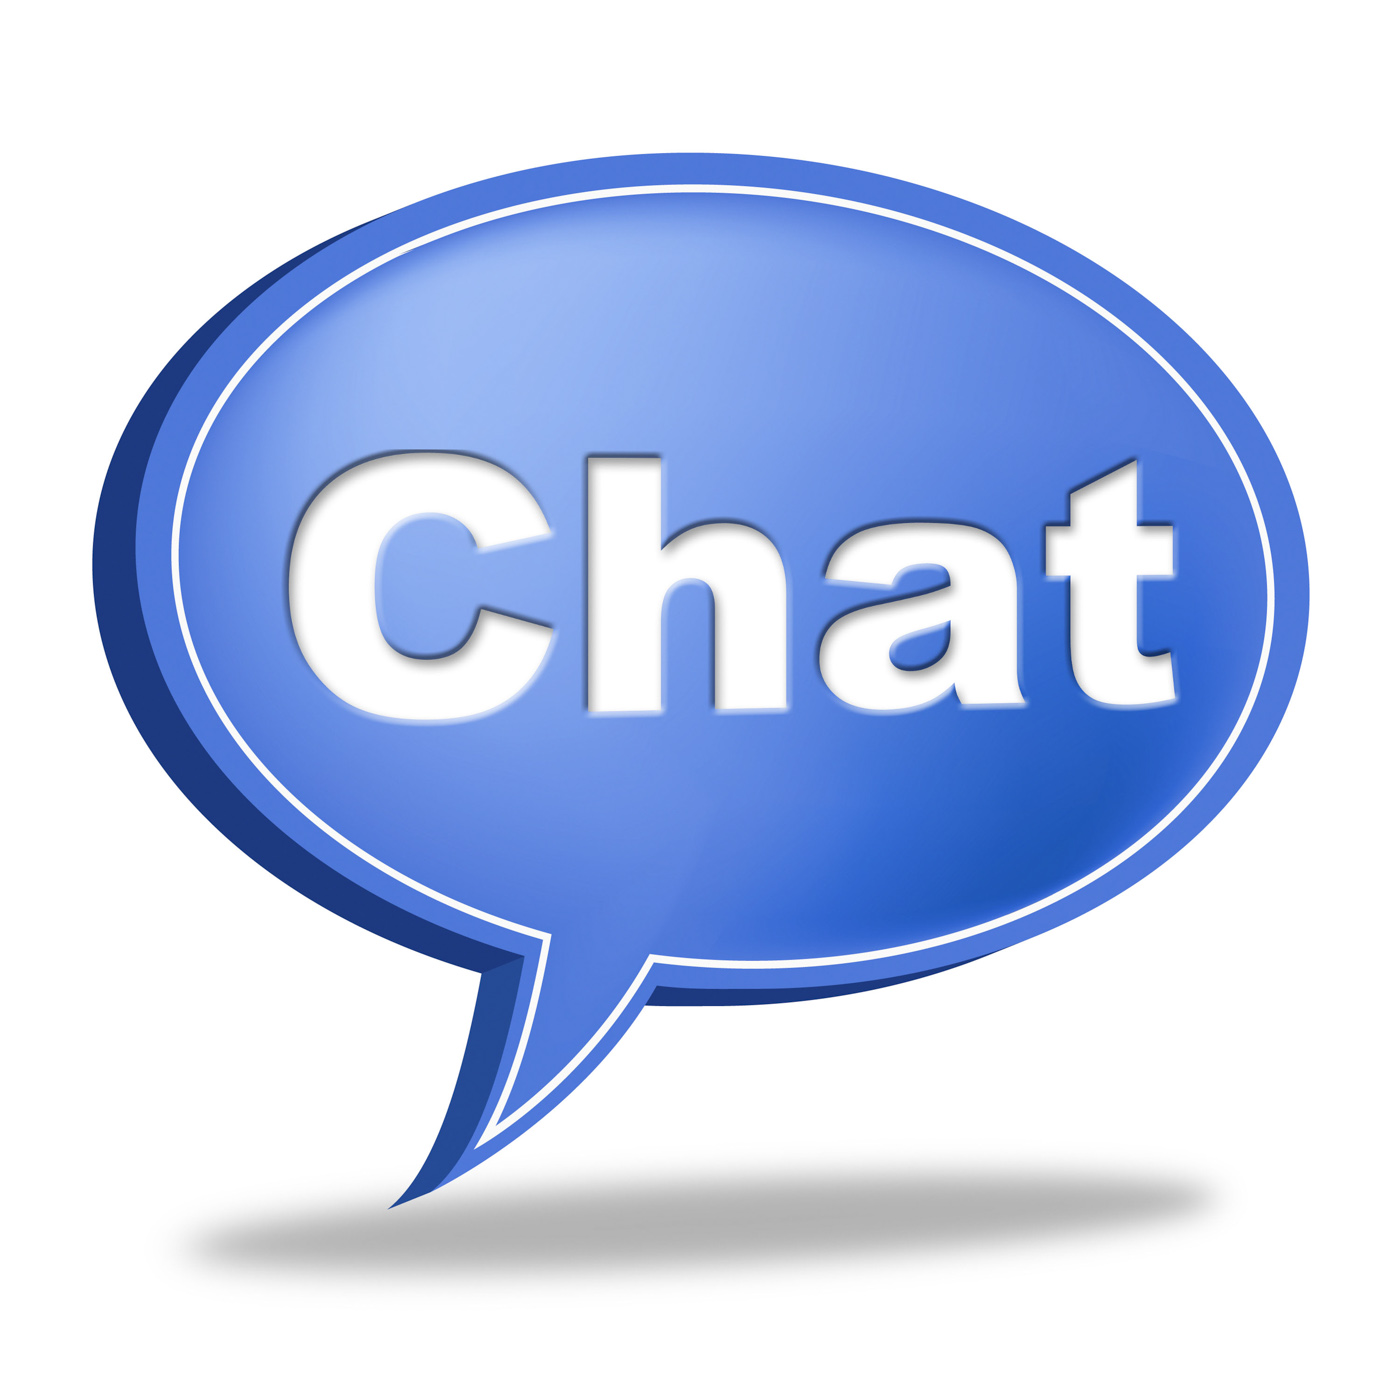 Chat Message Represents Communicate Networking And Call, Call, Network, Type, Text, HQ Photo